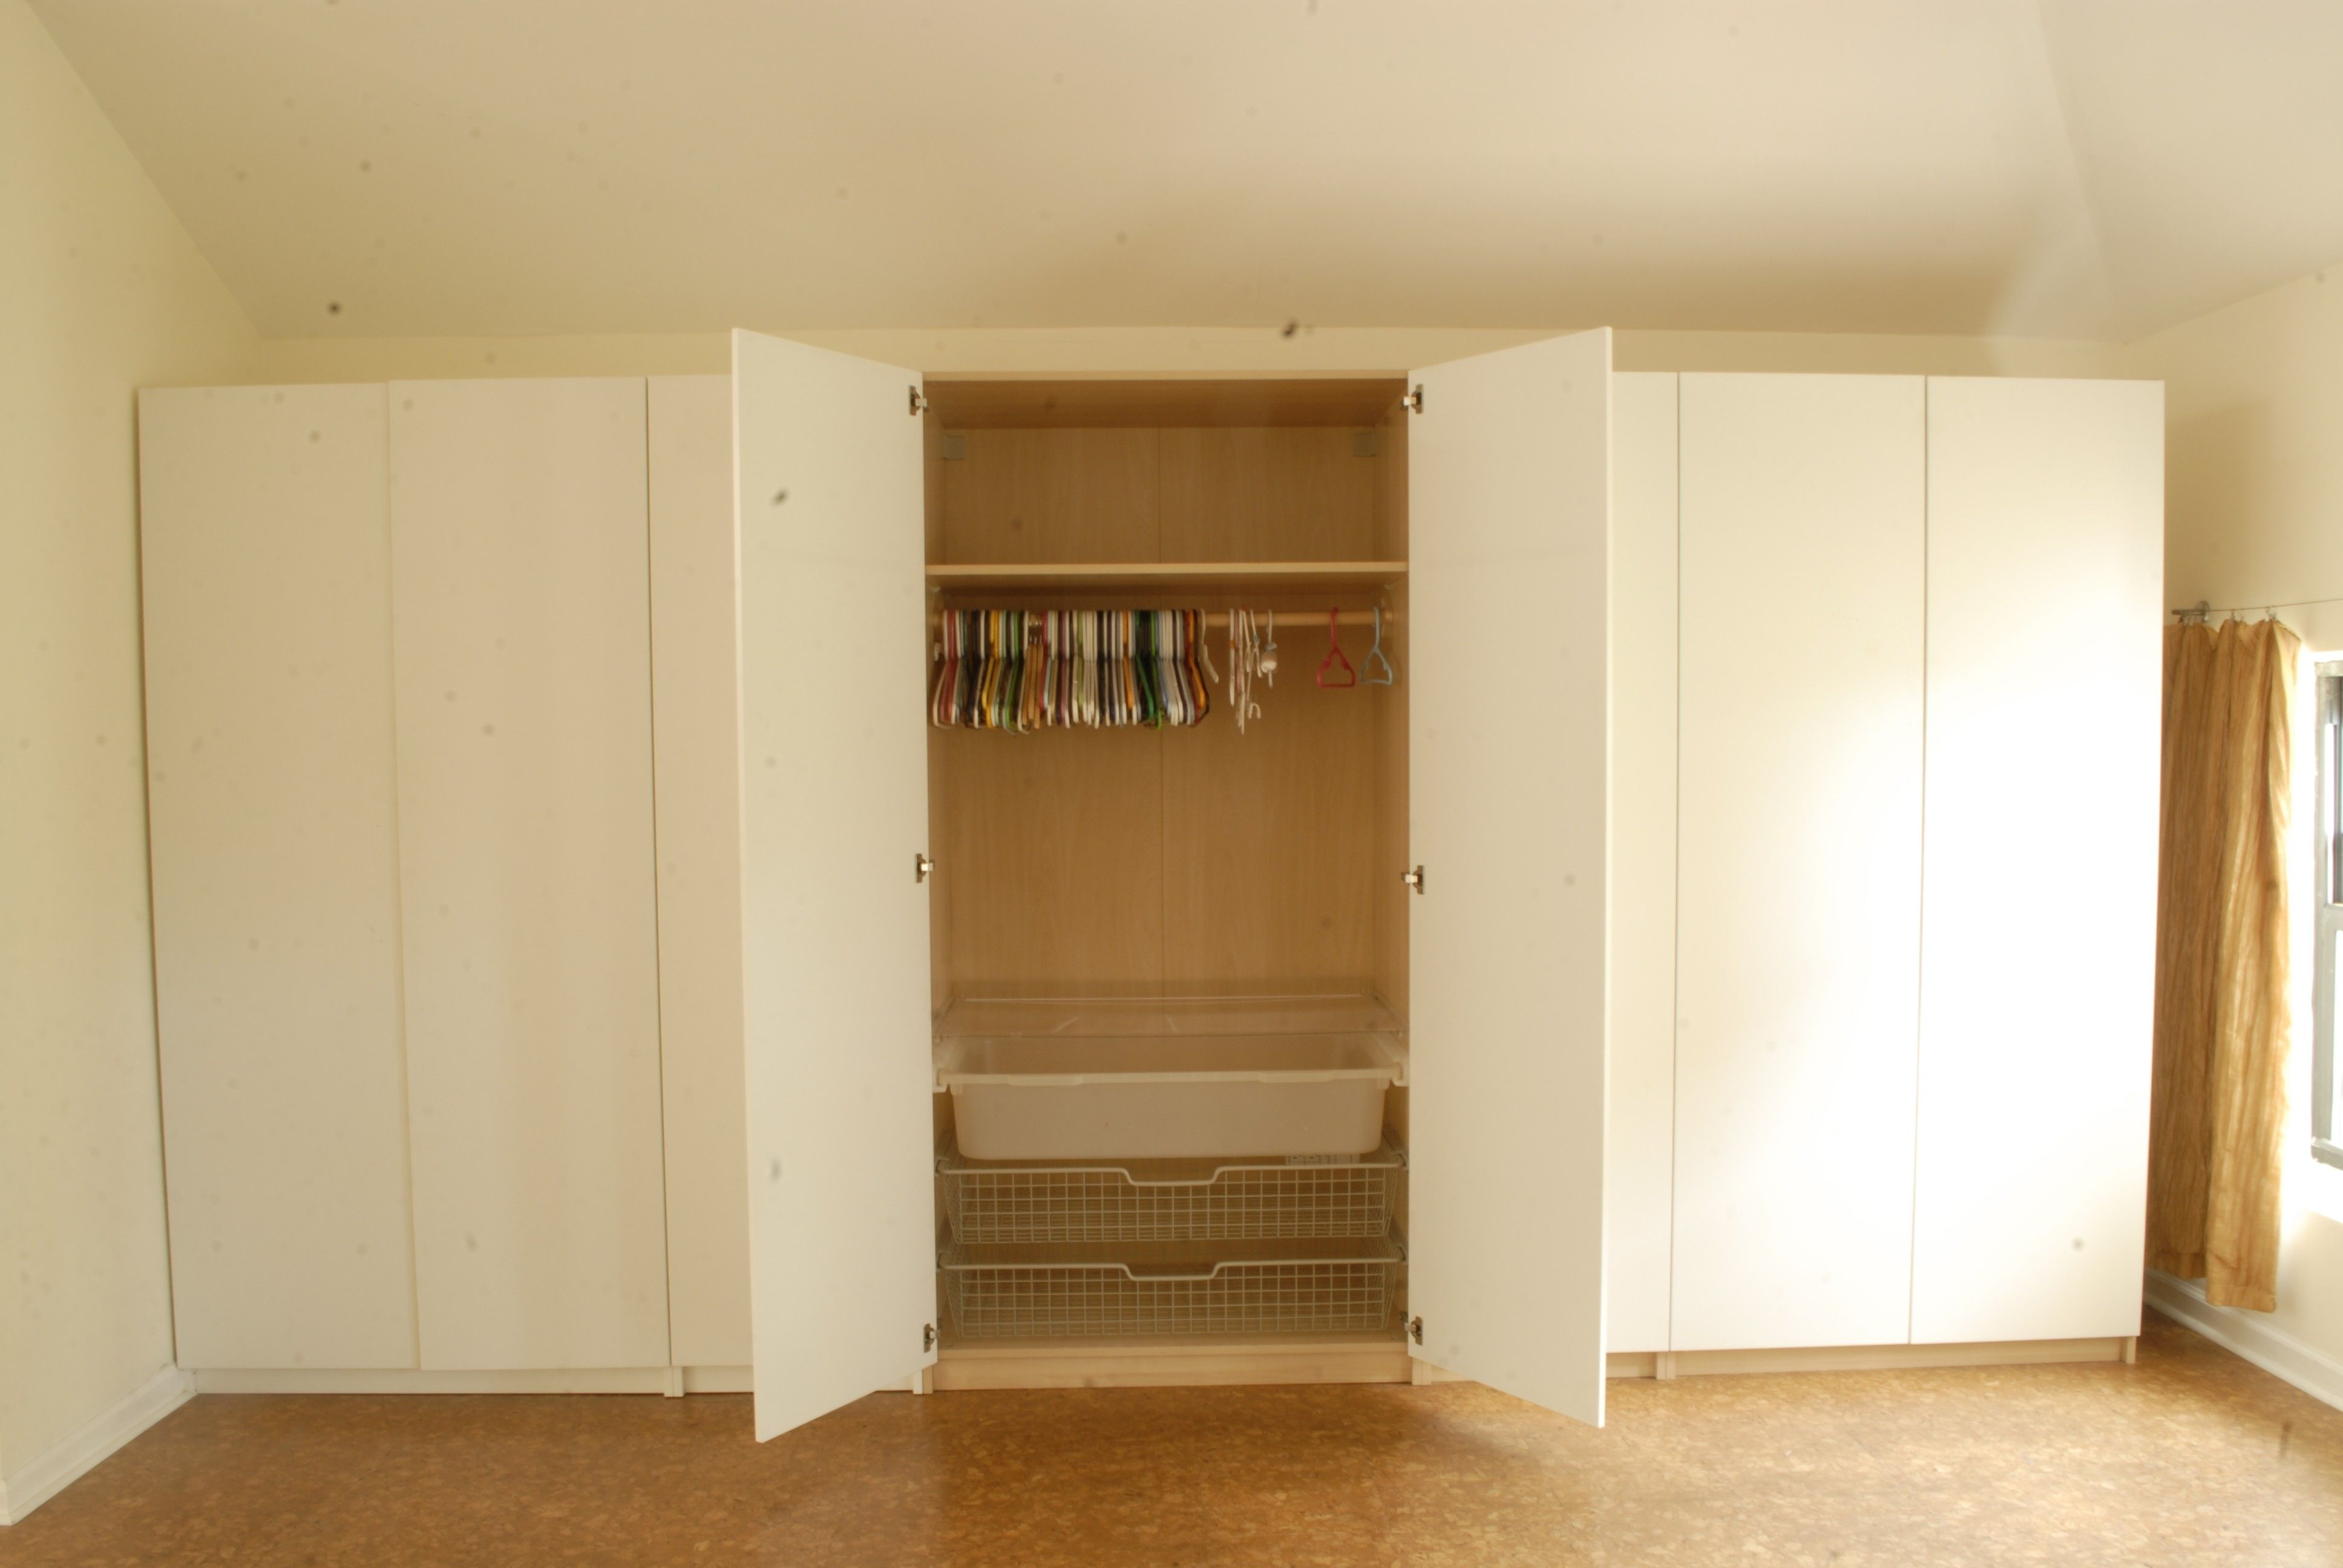 Garage Storage For Clothes (With images